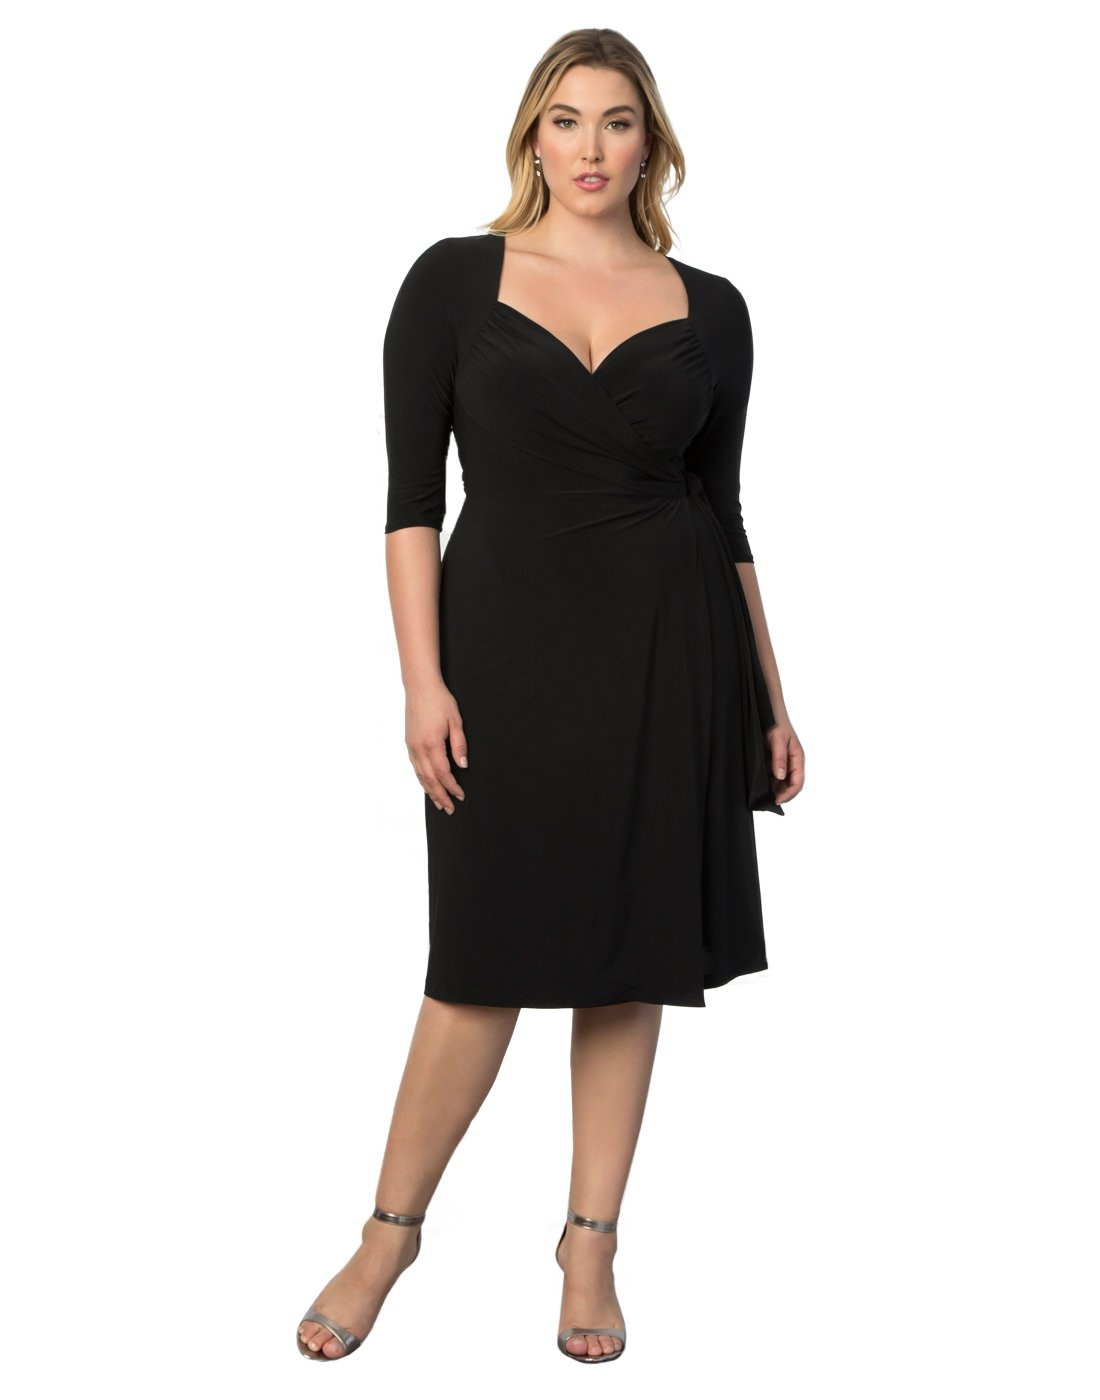 Kiyonna Women's Plus Size Sweetheart Knit Wrap Dress 3x Black Noir